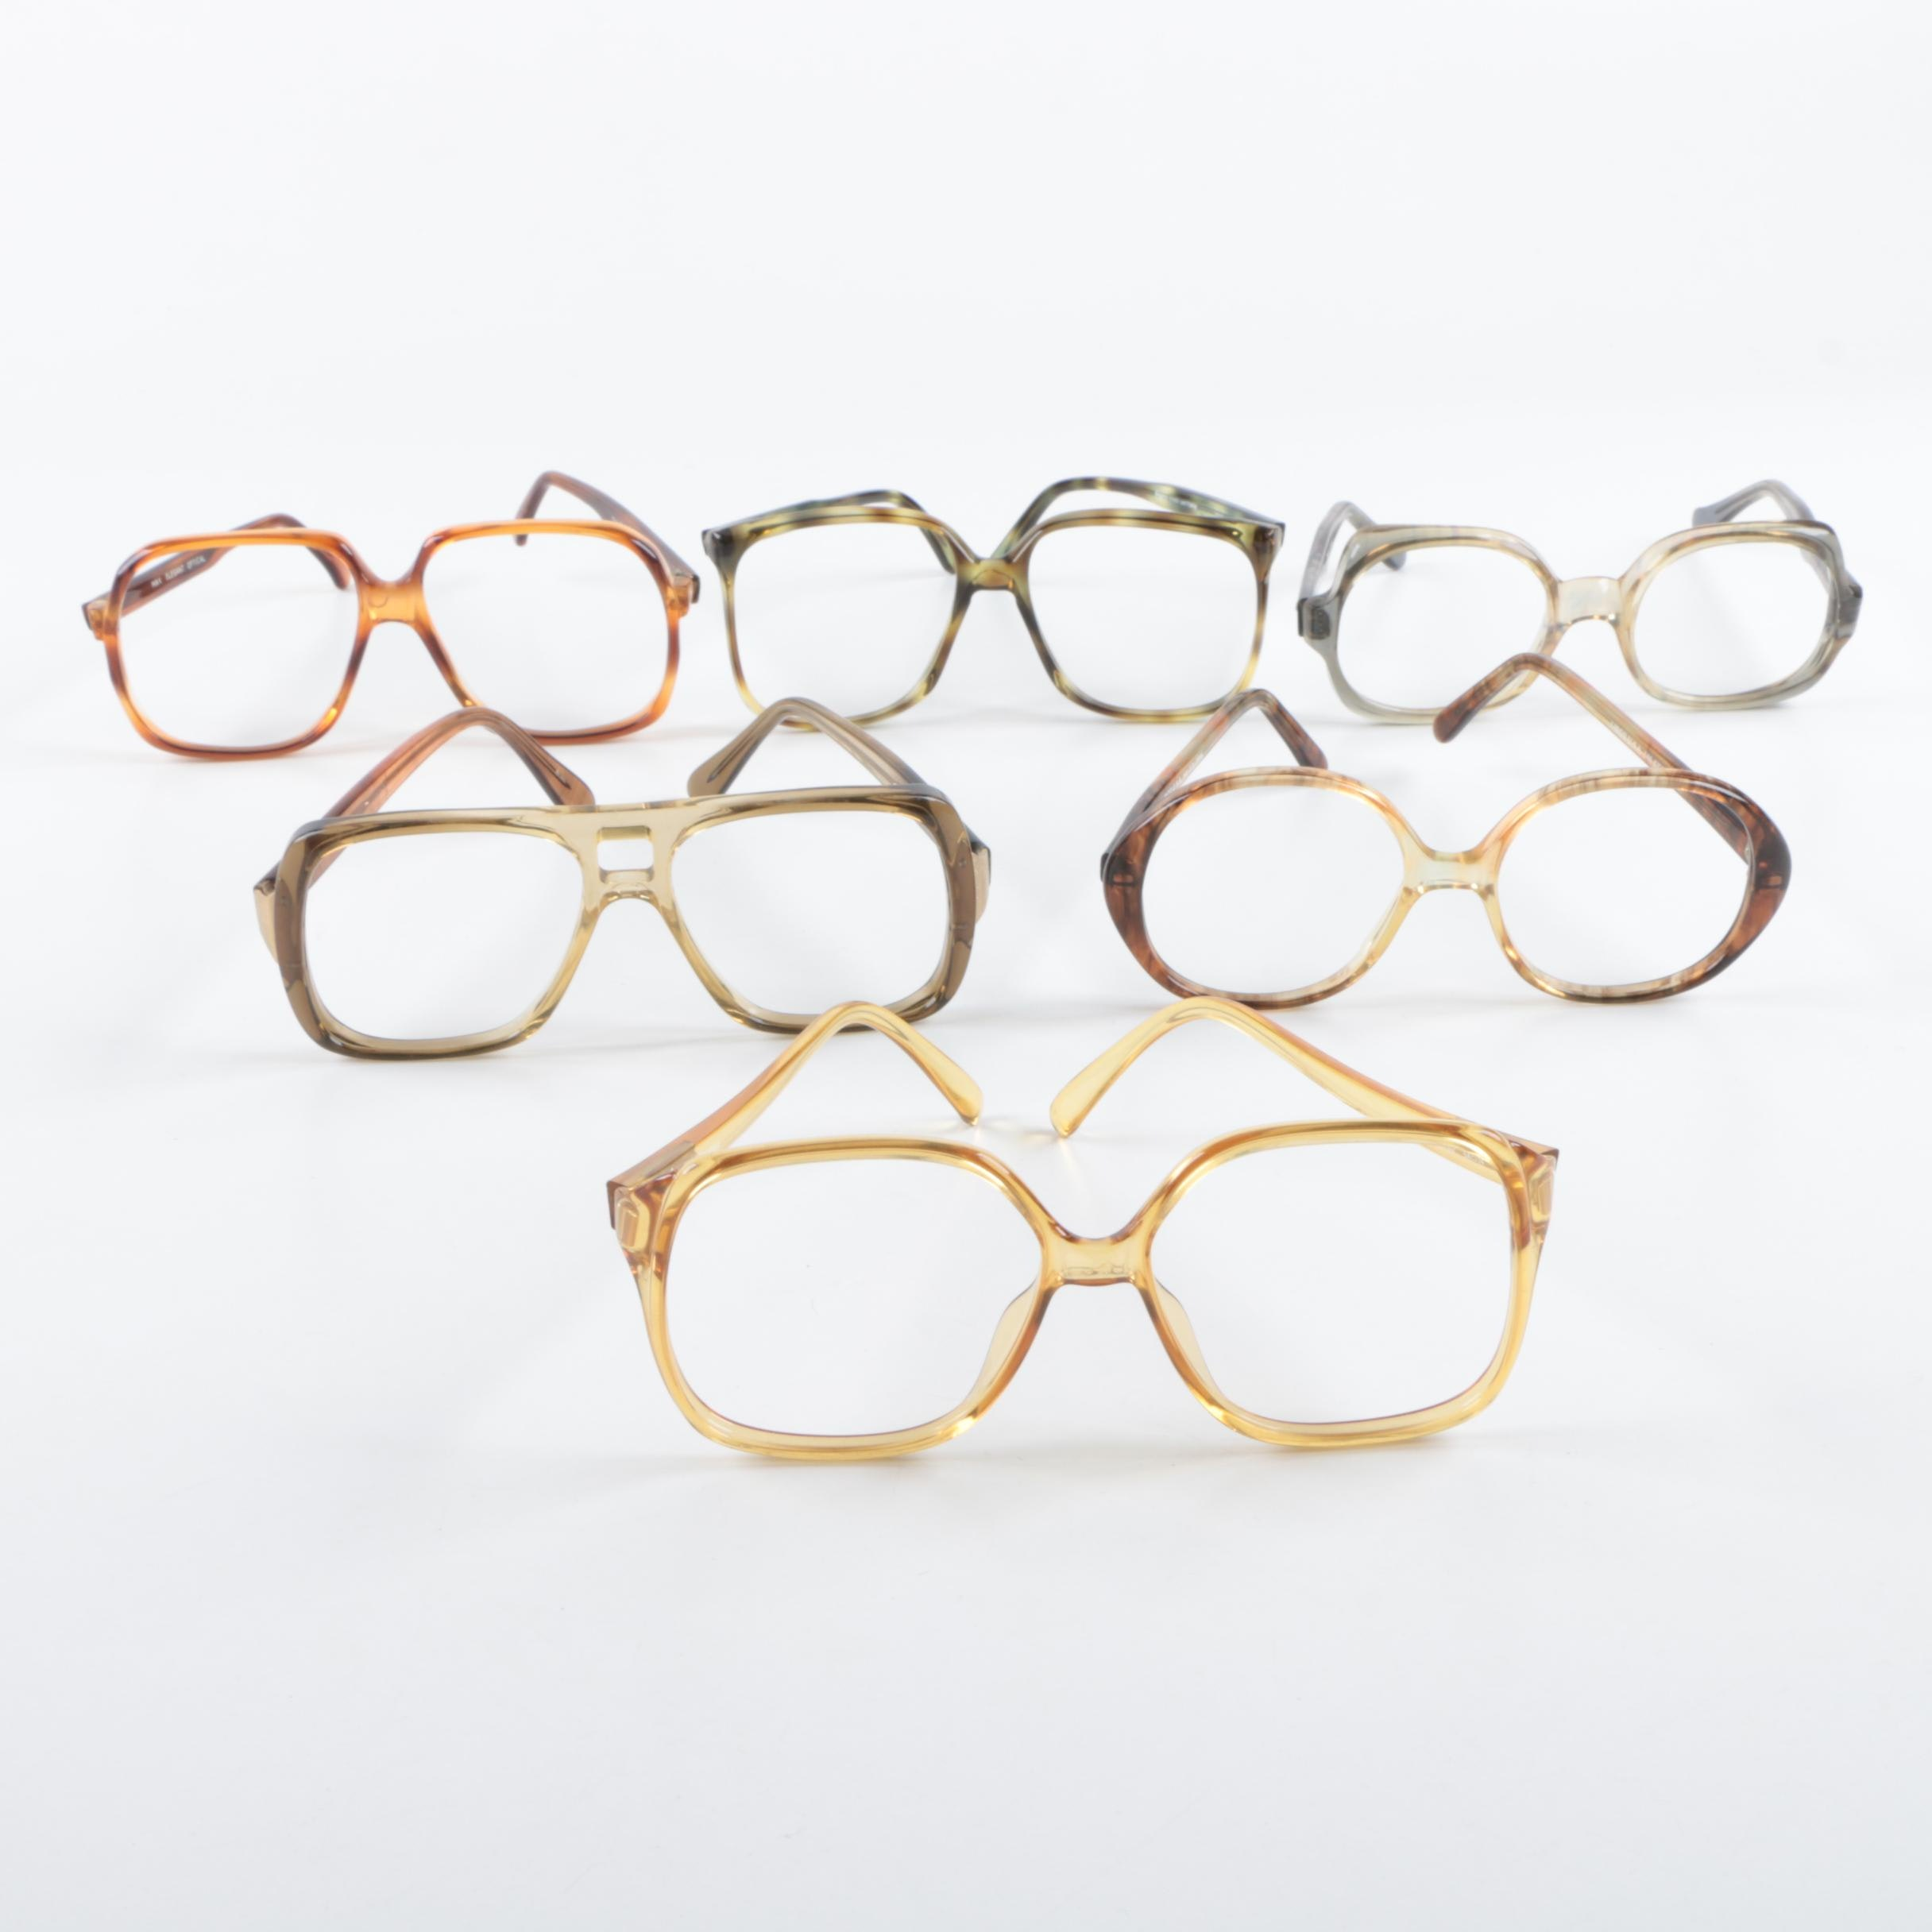 Vintage Eyeglass Frames, Including Max Elegant Optical